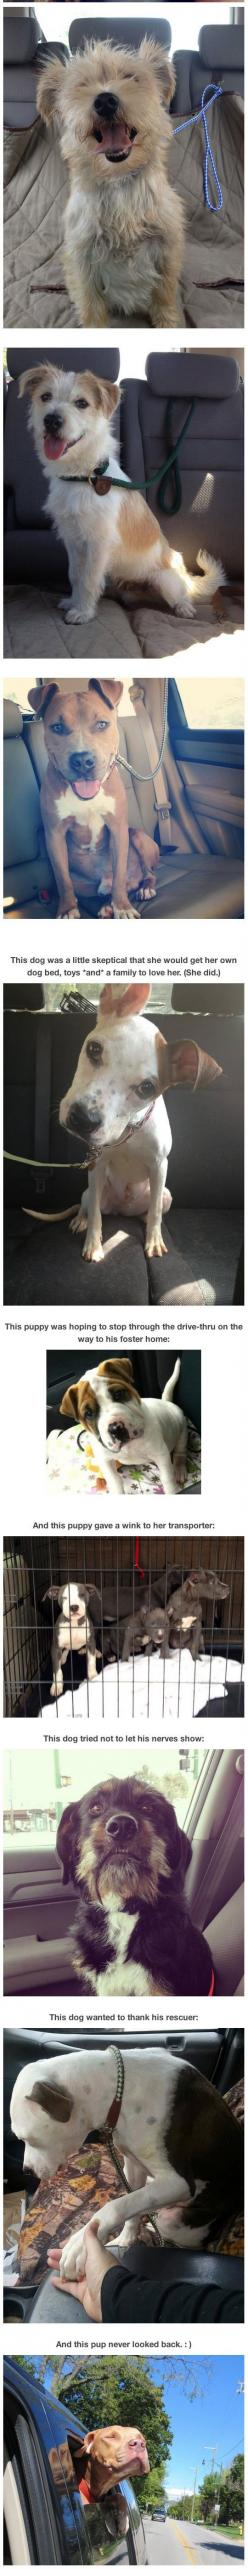 Photos of dogs taken after leaving the shelter and getting in the car…: Animal Rescue, Animal Shelters, Animals Dogs, Dogs In Shelters, Humor Funnypictures, Hero Animals, Shelter Animals